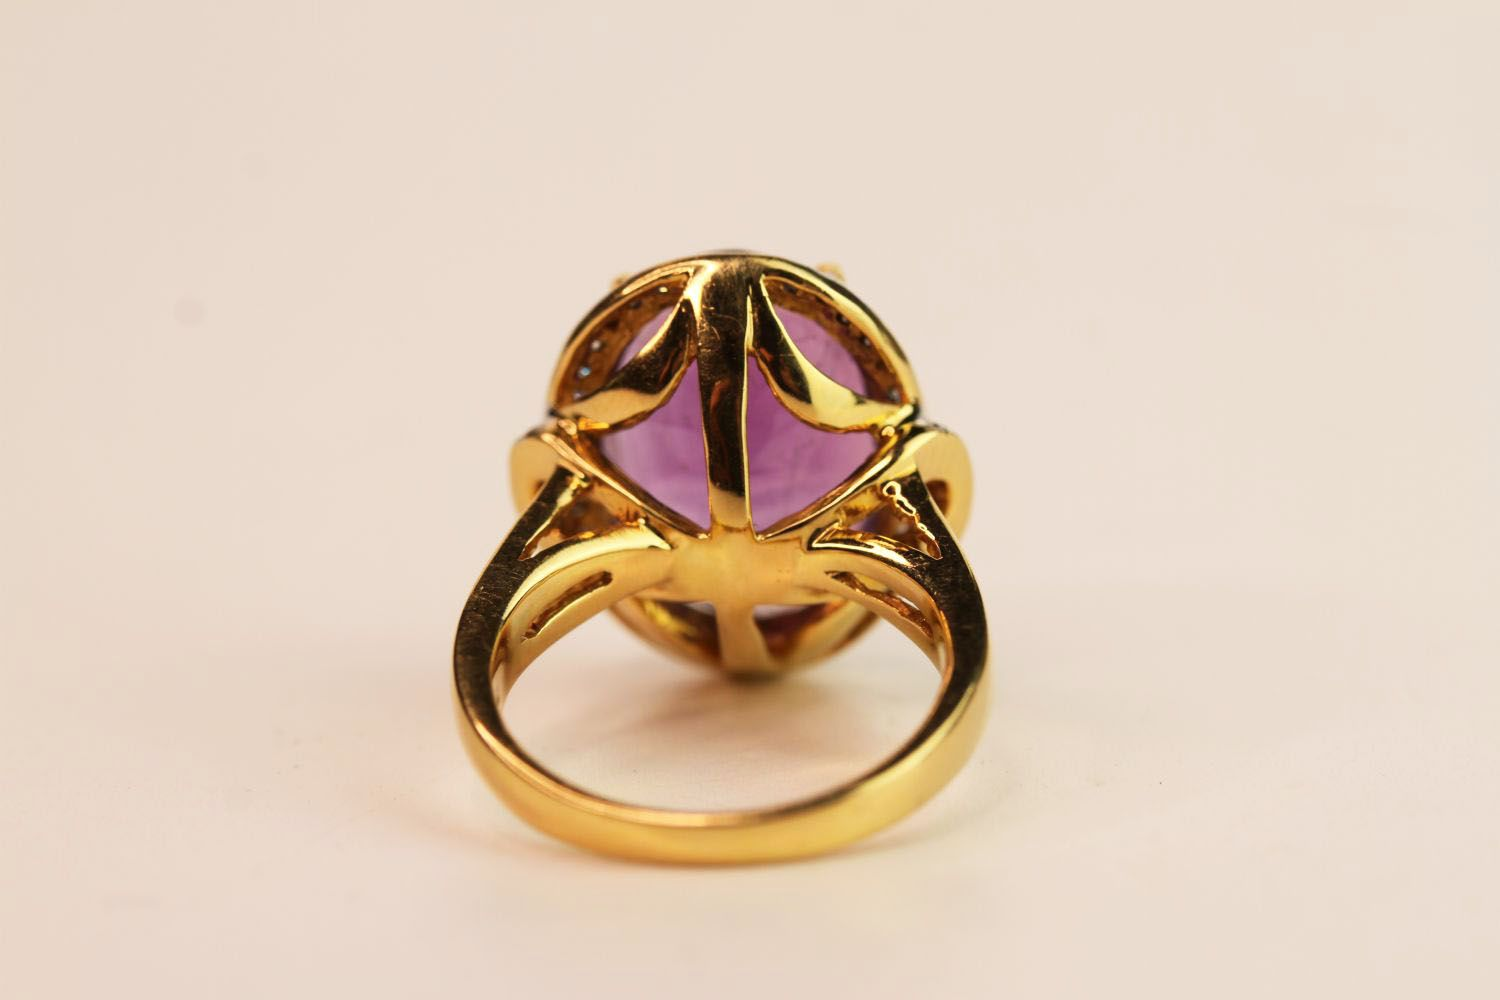 Amethyst & Diamond Cluster Ring, set with an oval cut amethyst, surrounded by round brilliant - Image 3 of 3